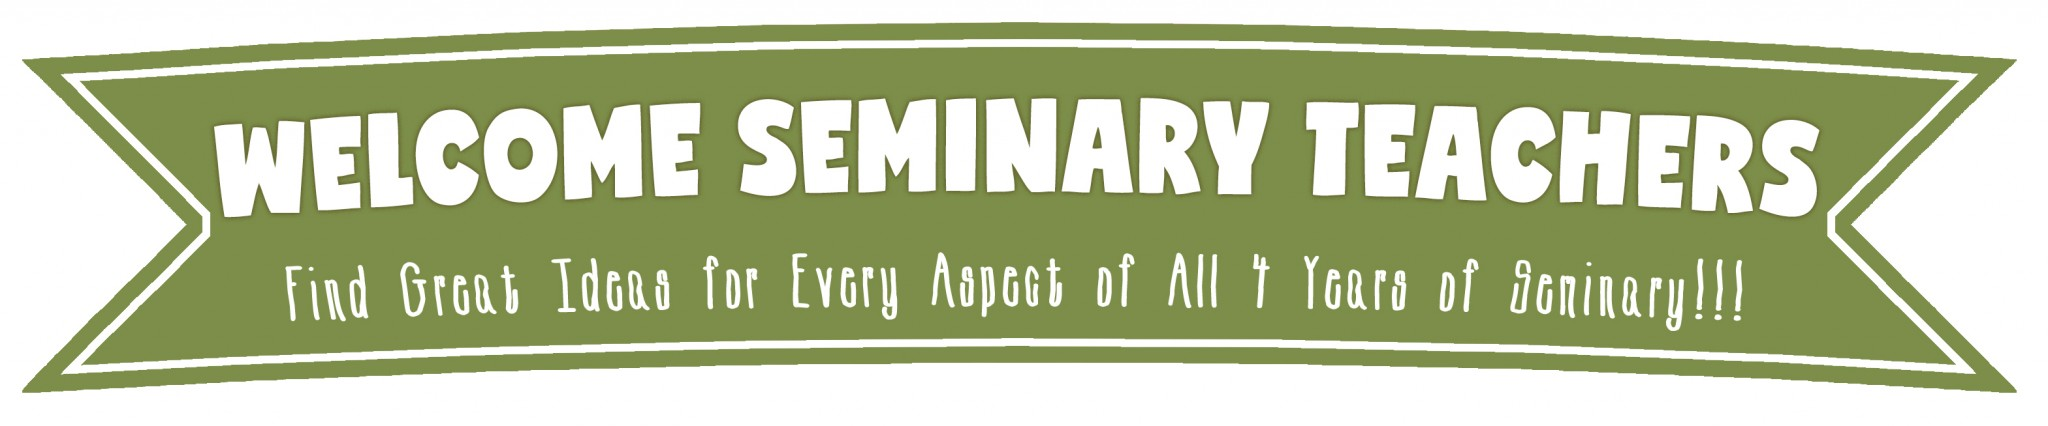 Welcome Seminary Teachers!